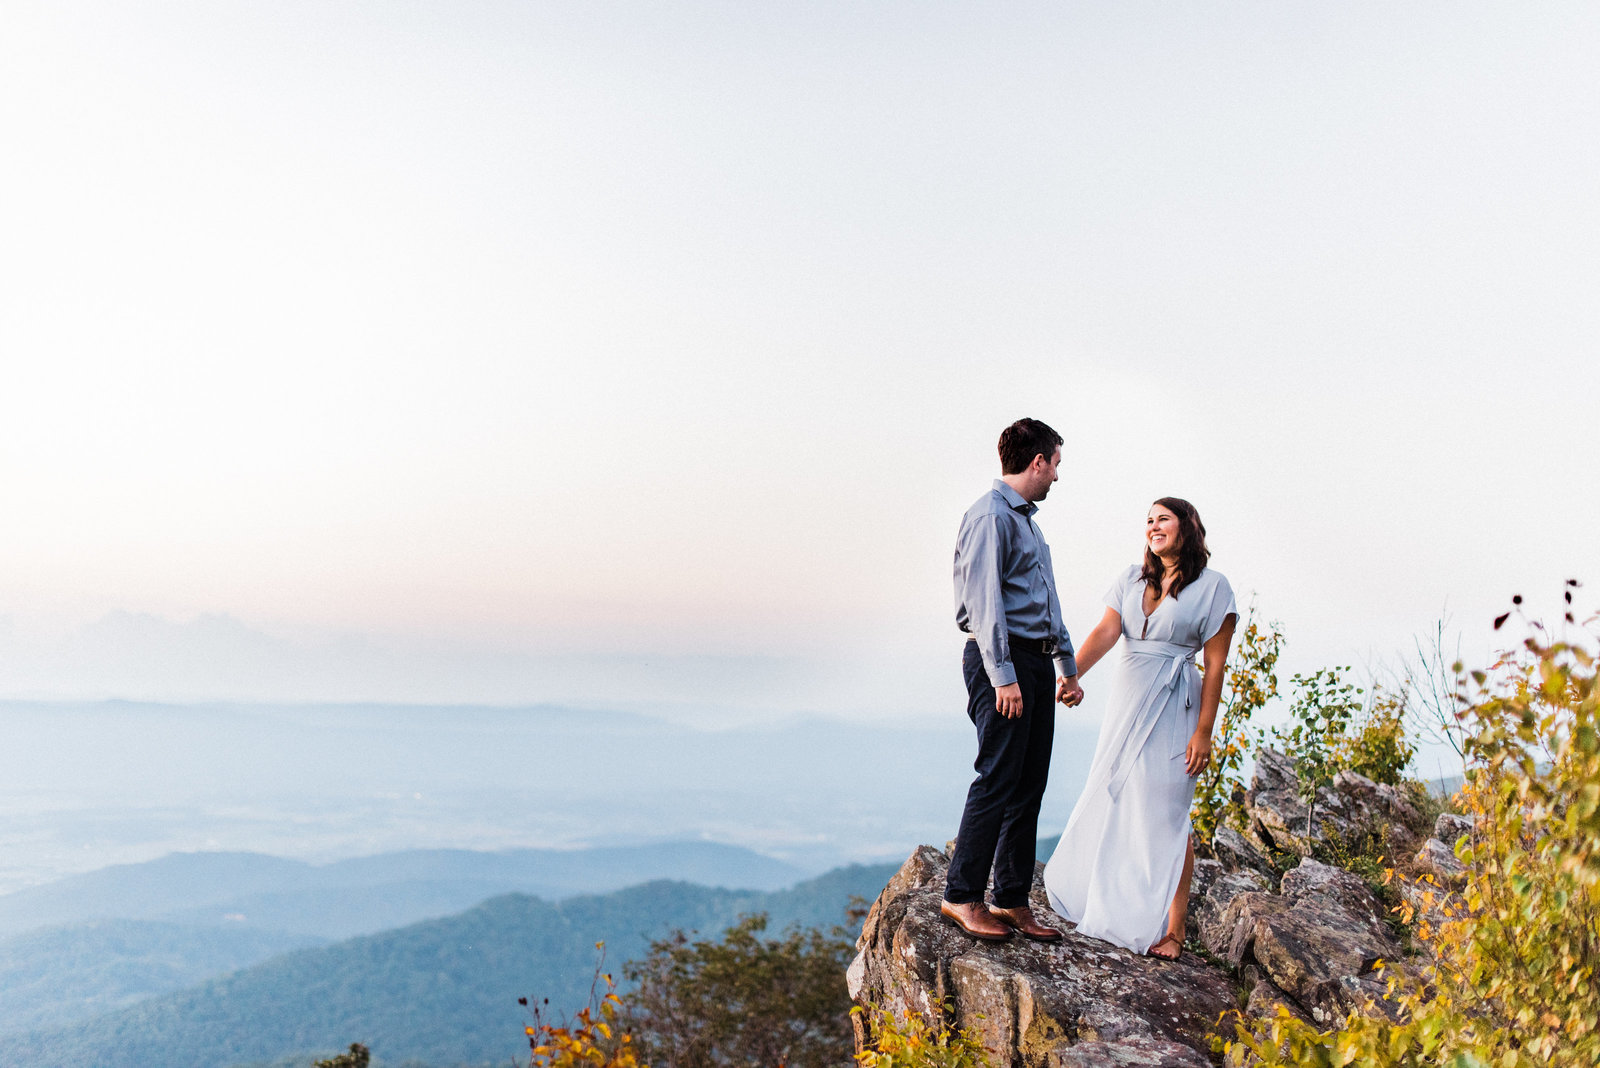 shenandoah-mountains-engagement-shenandoah-mountains-sunset-engagement-session-blue-ridge-mountains-sunset-engagement-session-virginia-wedding-photographer-shenandoah-wedding-photographer-melissa-durham-photography